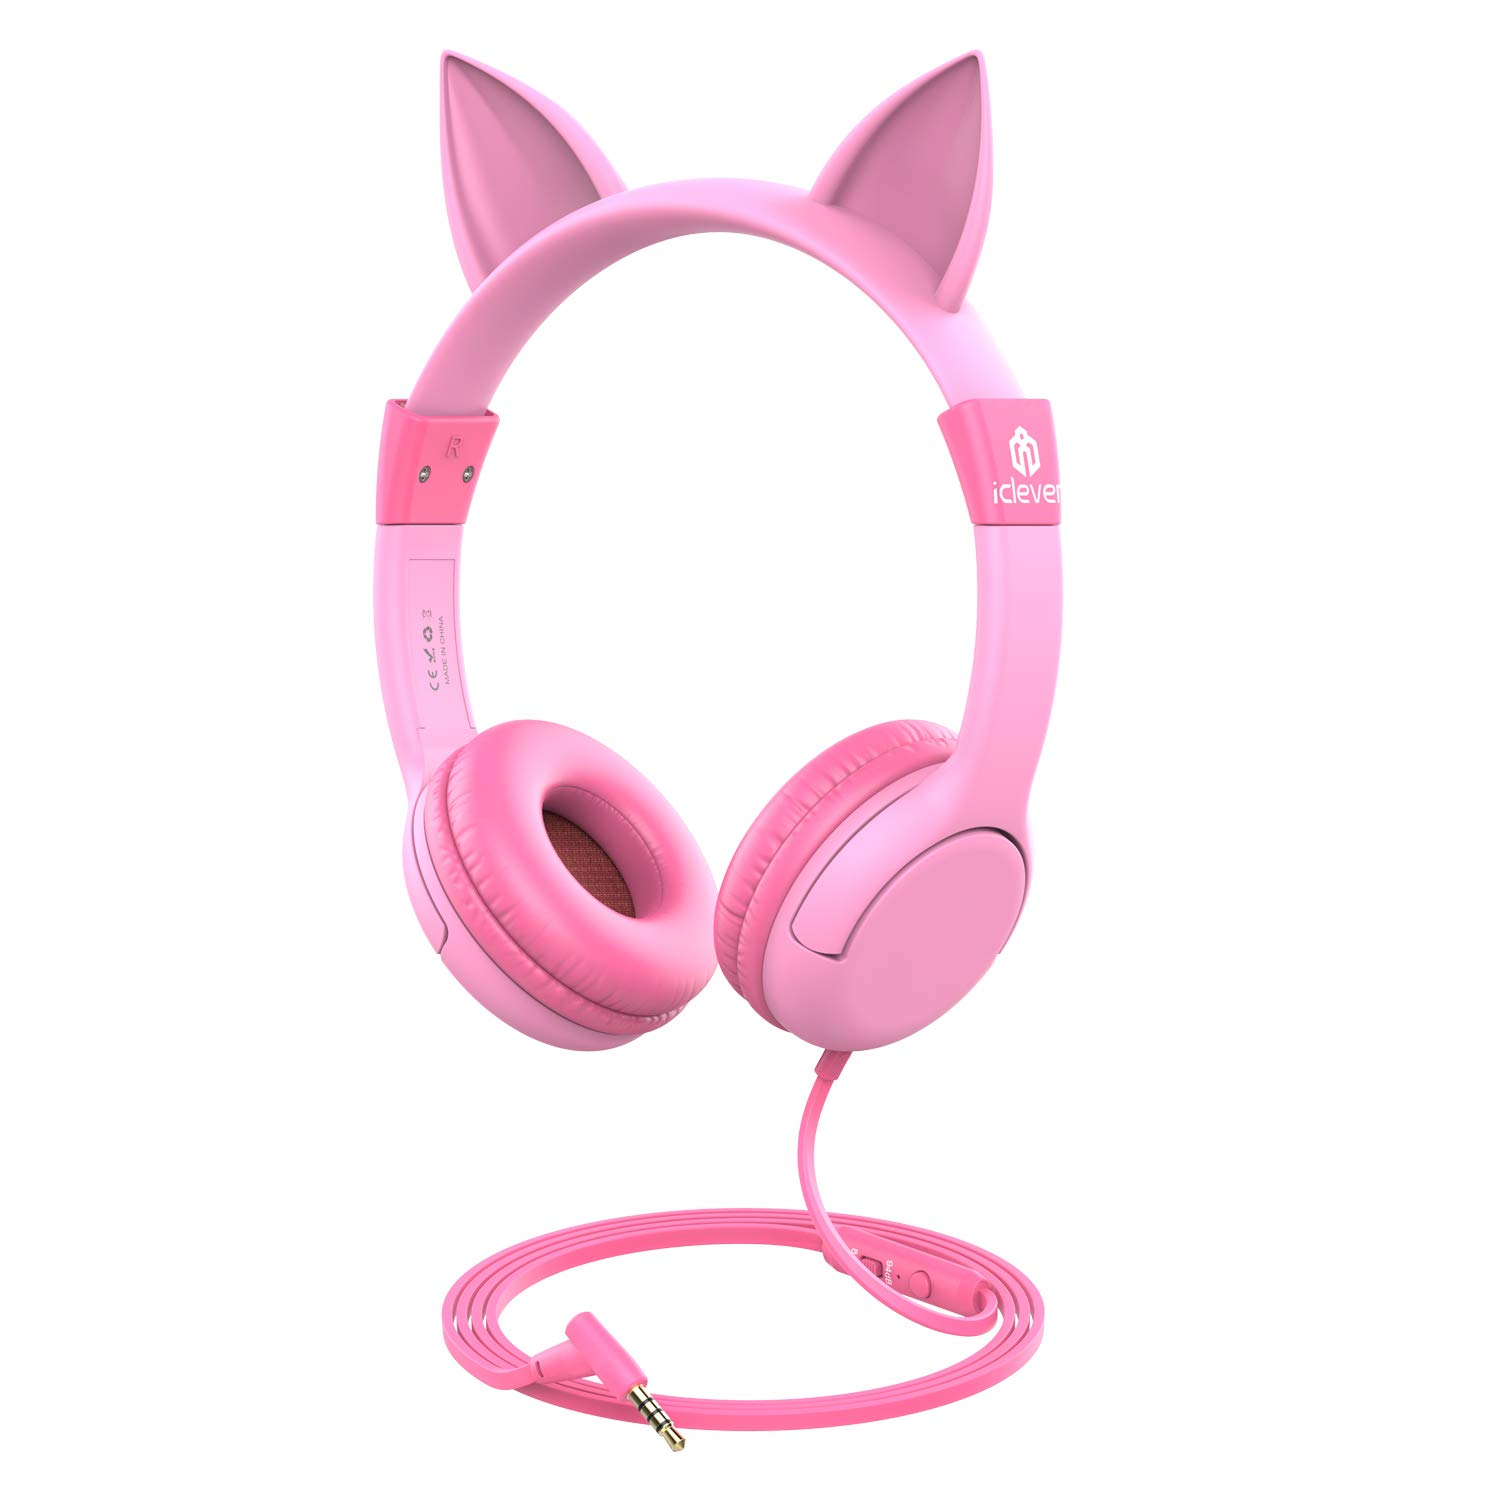 [2019 Upgrade]iClever Boostcare Kids Headphones Girls - Cat Ear Hello Kitty Wired Headphones for Kids on Ear, Adjustable 85/94dB Volume Control - Toddler Headphones with MIC for Kindle Tablet, Pink by iClever